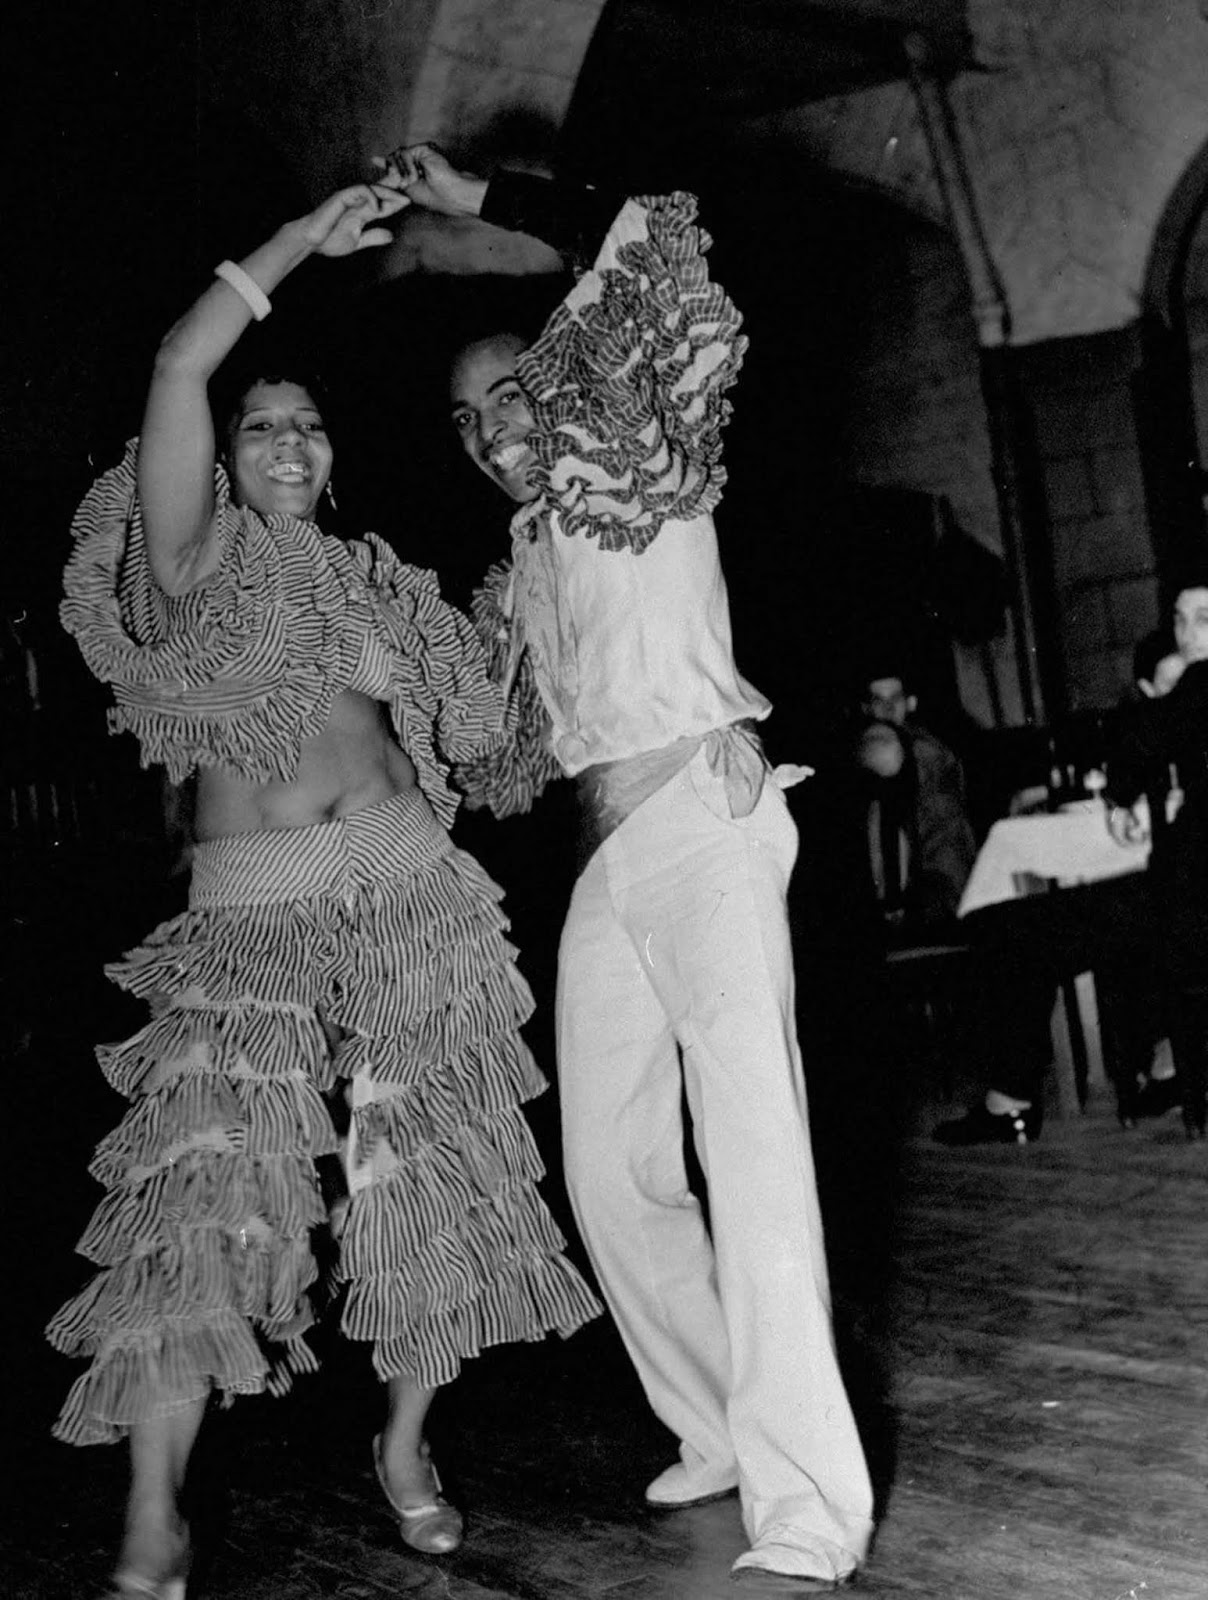 A view of people dancing at a Cuban club. 1937.